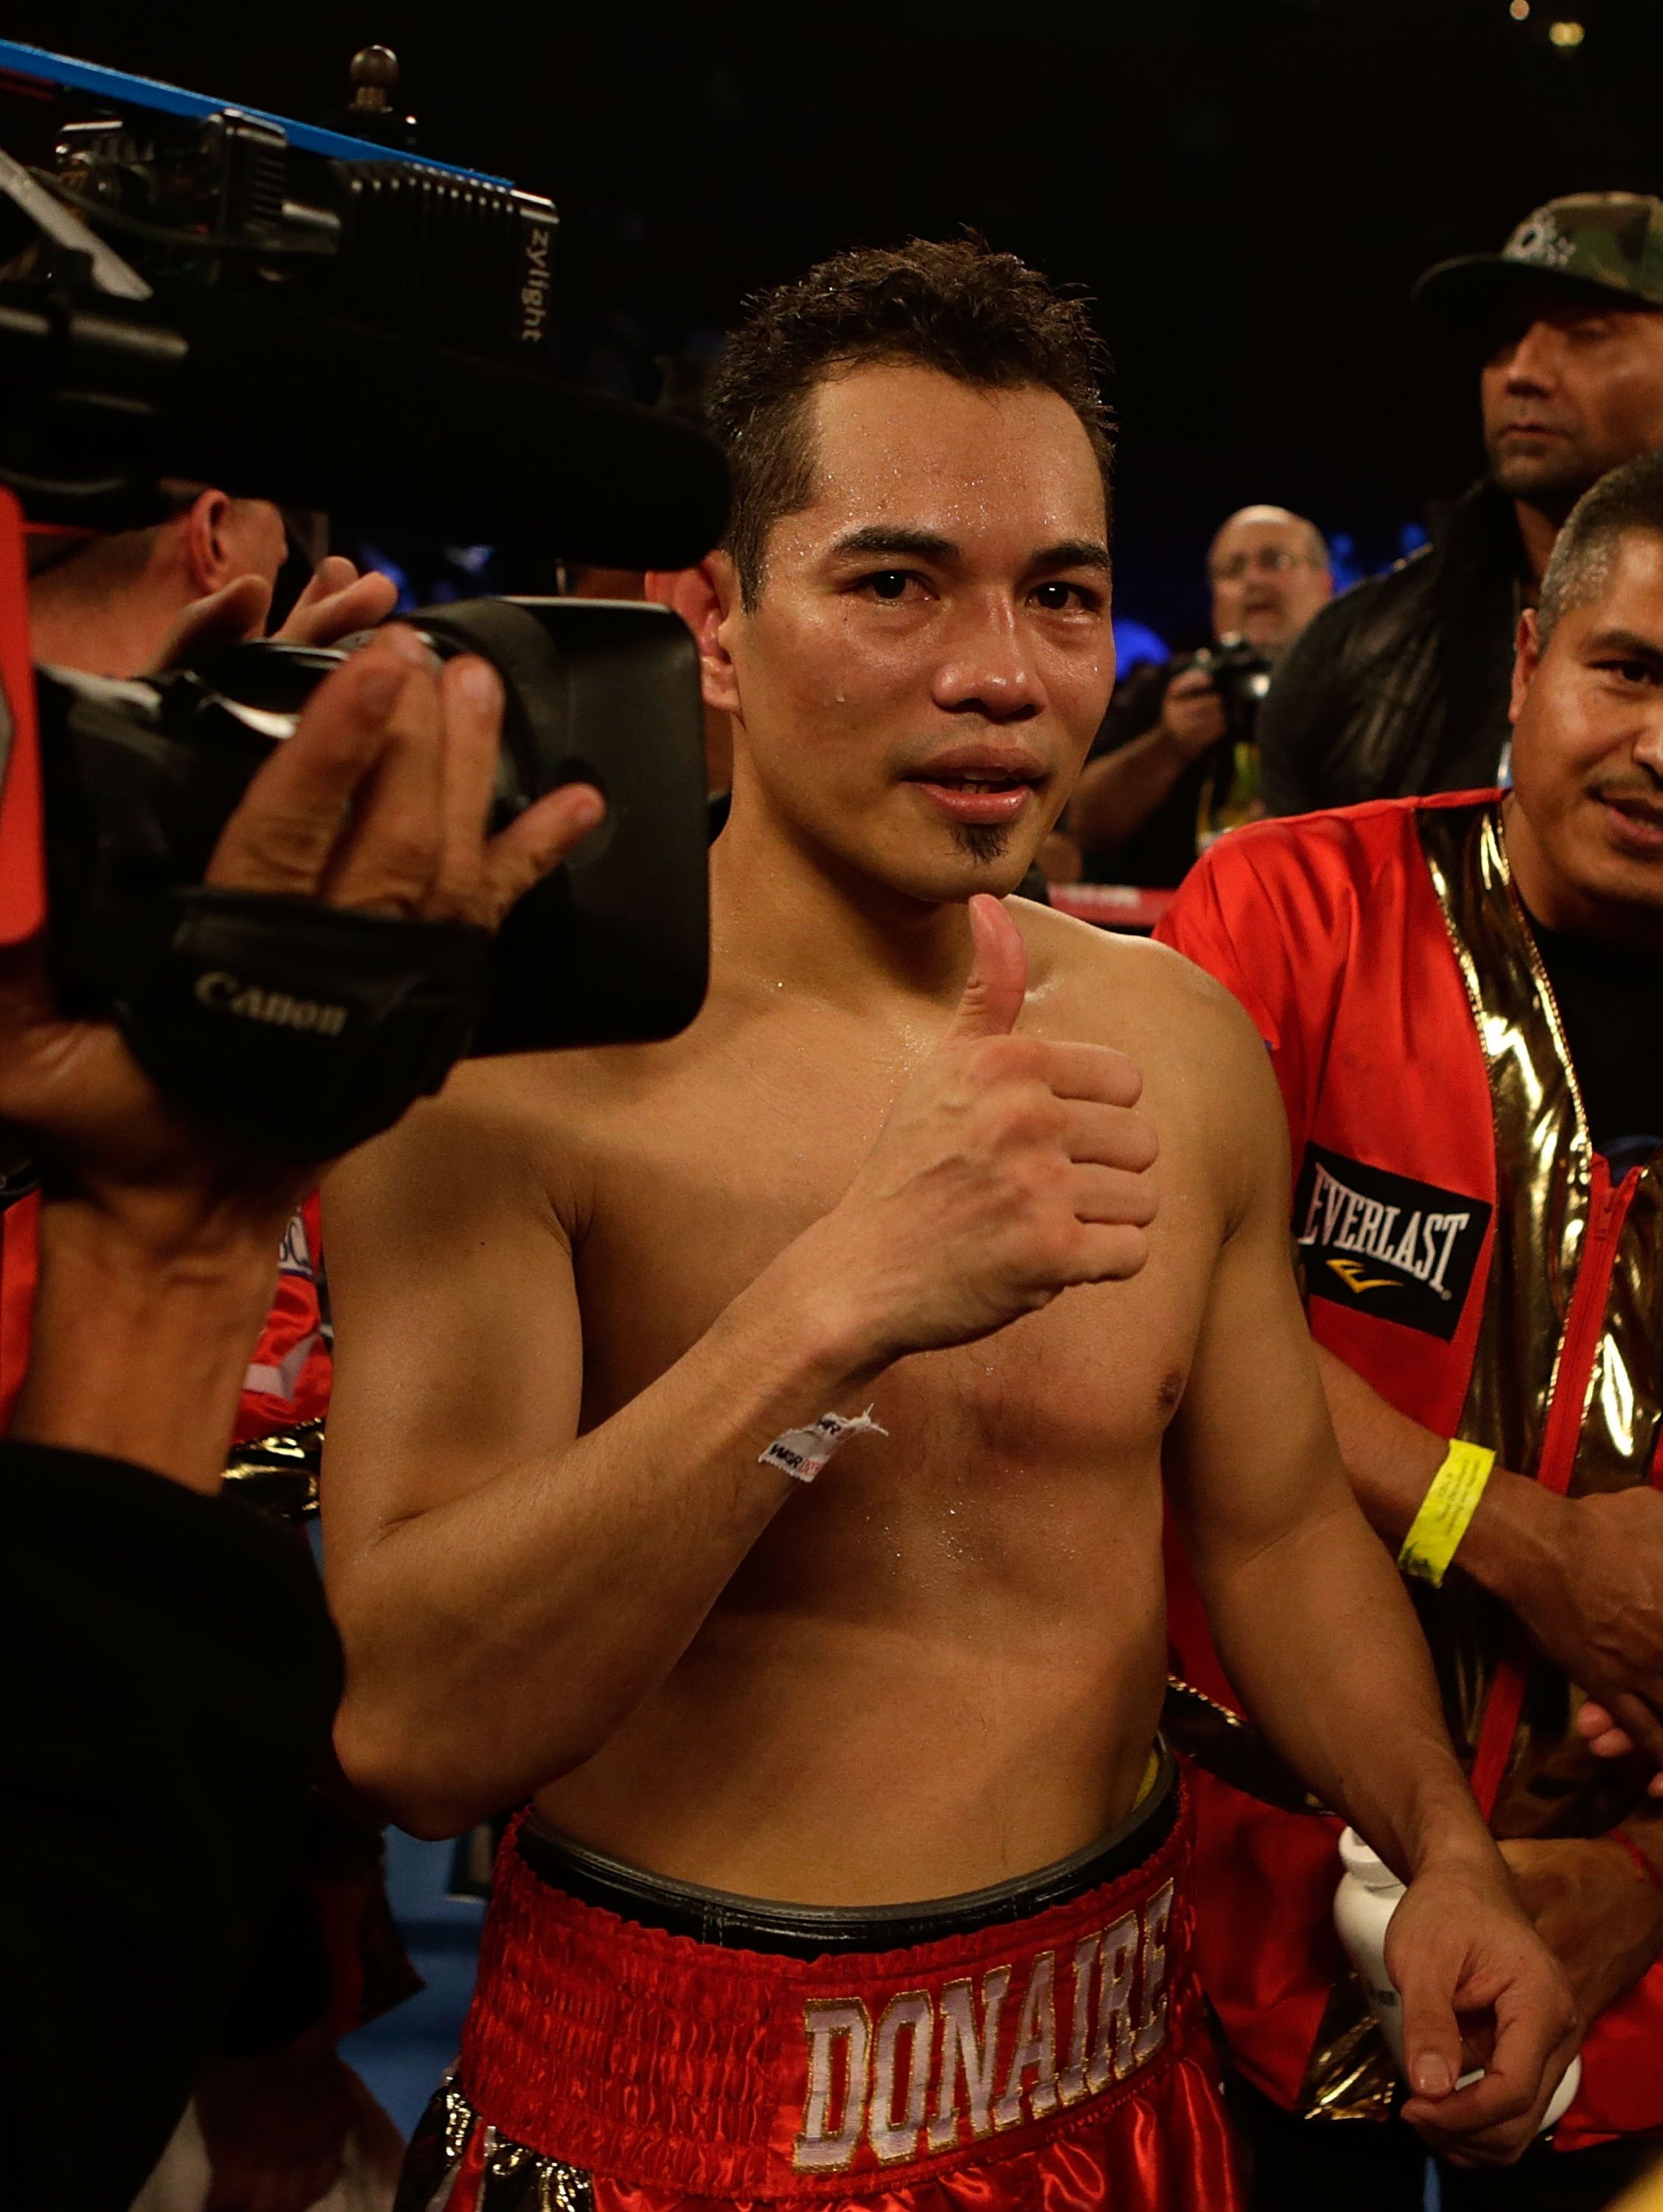 Top Rank's Nonito Donaire is one of the world's best pound-for-pound boxers. (Getty Images)